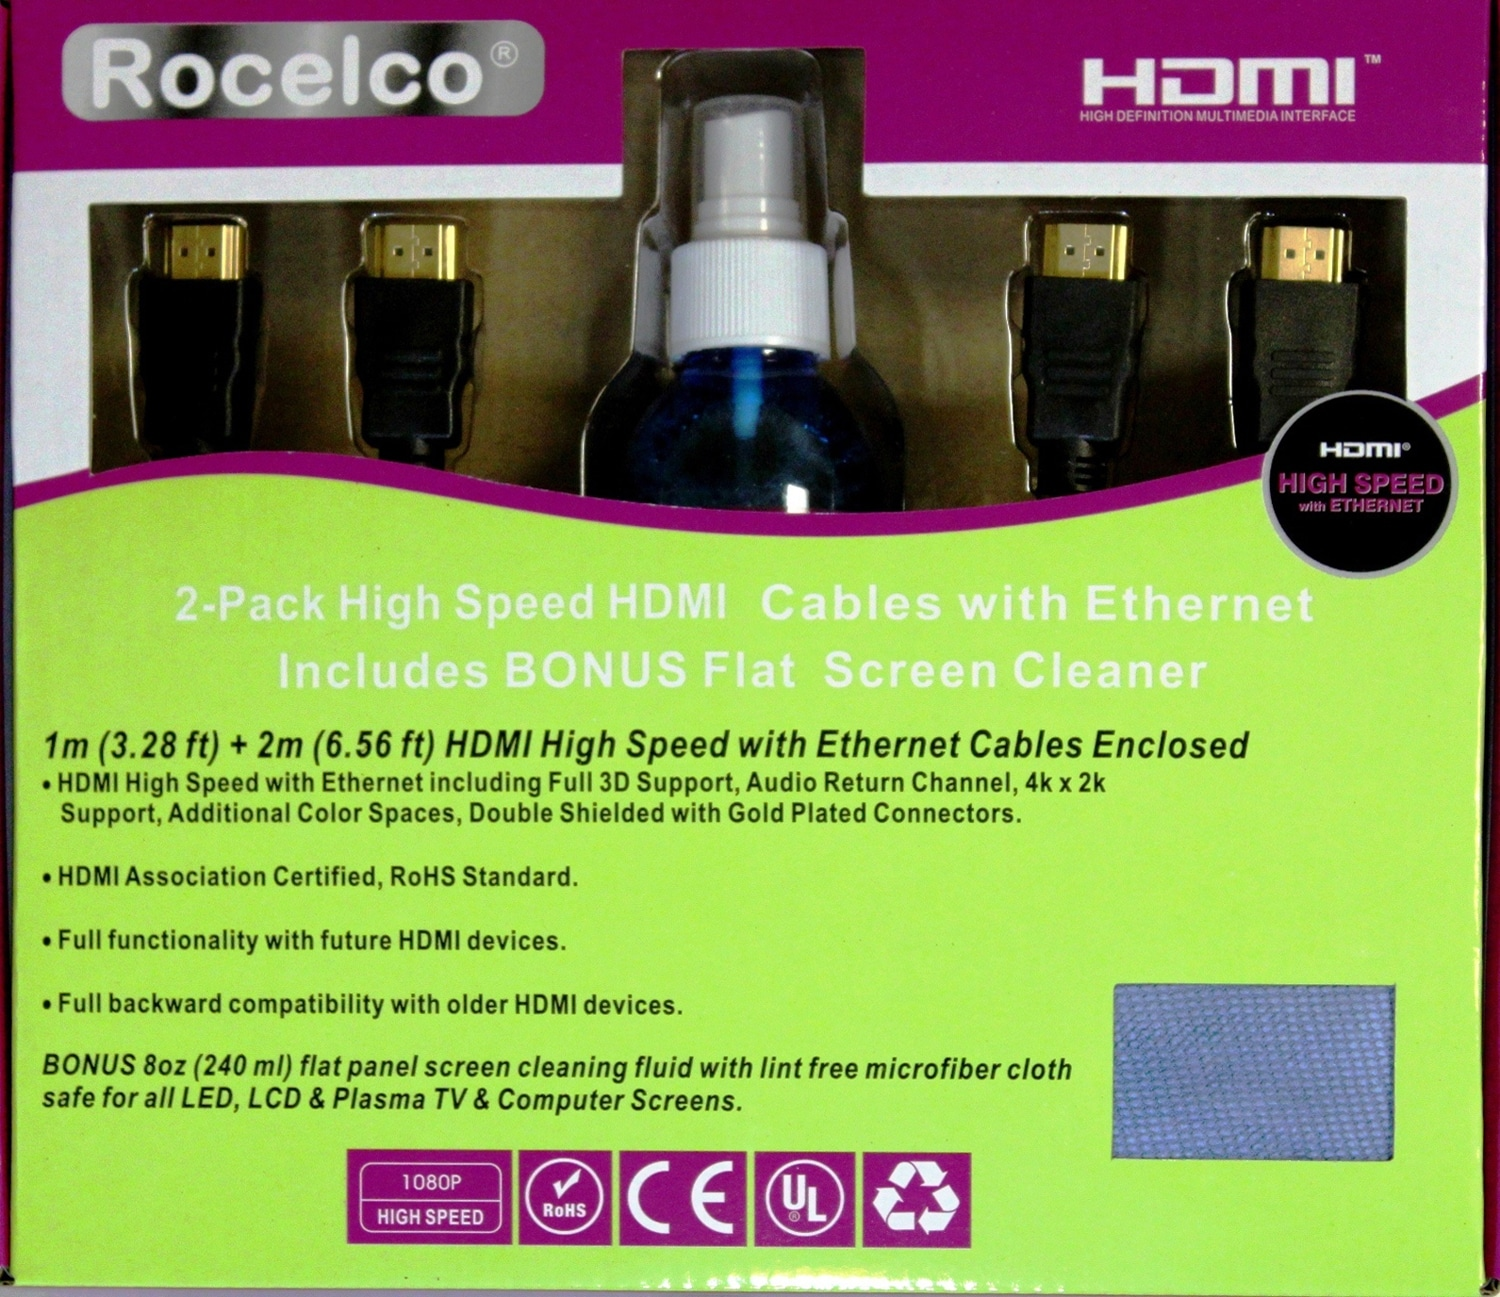 Televisions - Rocelco 2-Pack HDMI Starter Kit with BONUS Flat Screen Cleaner